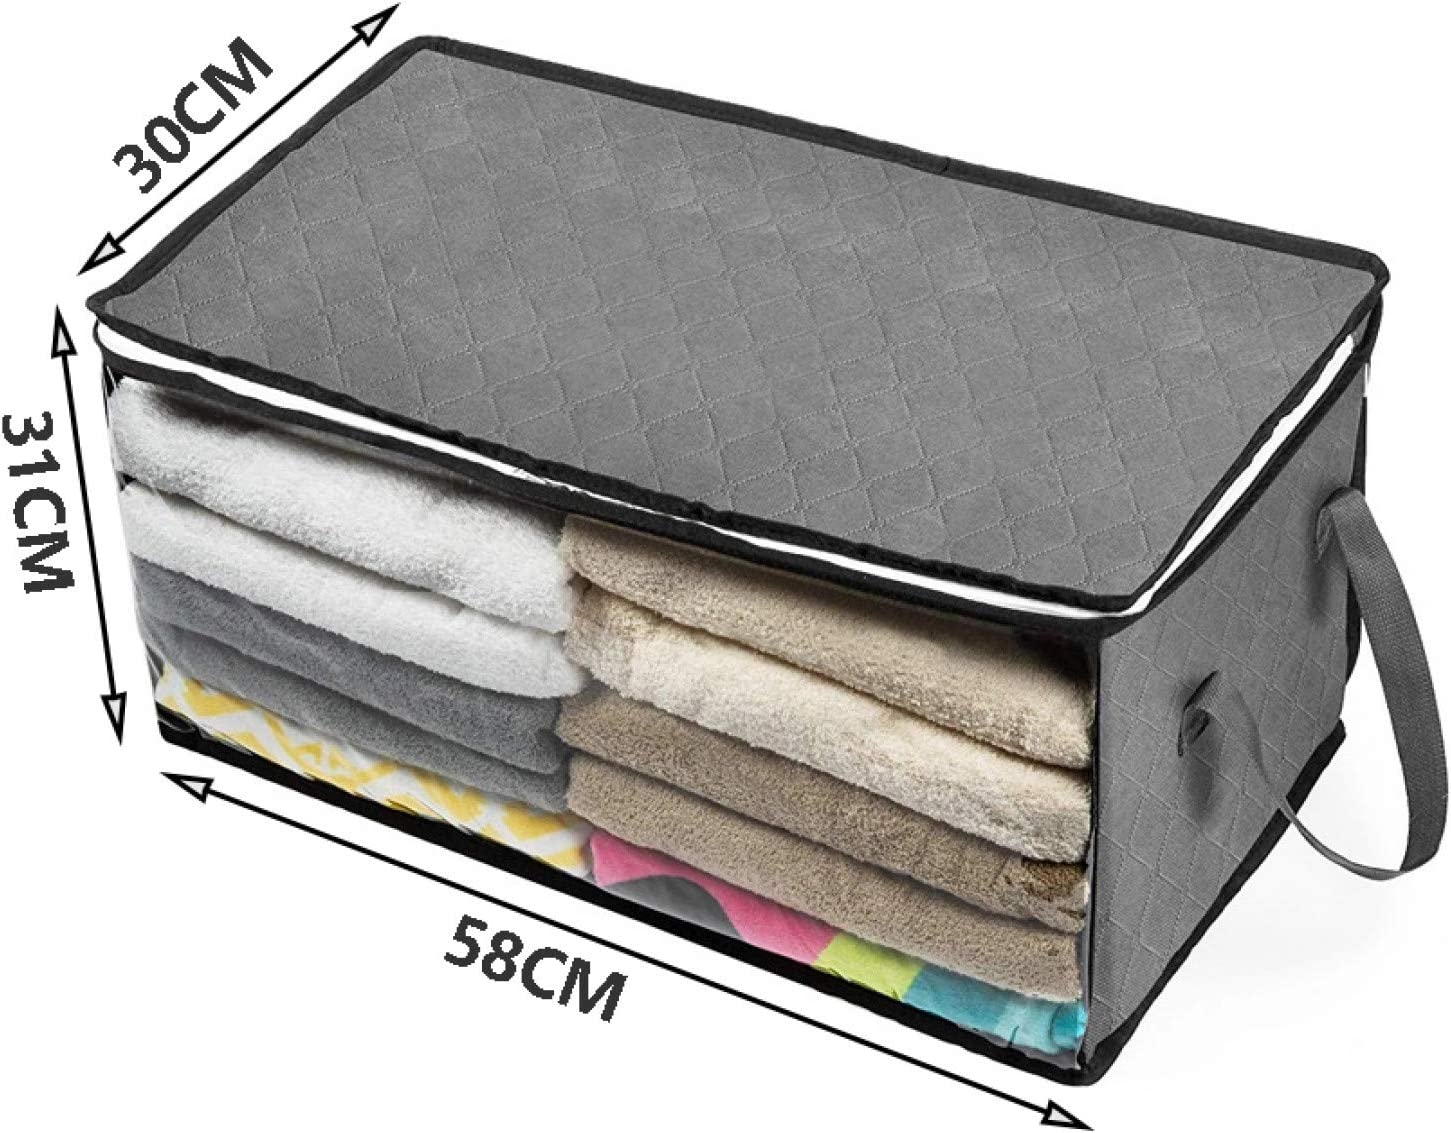 Lsooyys Storage Bag Foldable Comforter Household Clothing Storage Box Dustproof Non-woven Quilt Storage Bedding Bra Socks Coats Wardrobe Organizer with Clear Window Clothes Blanket